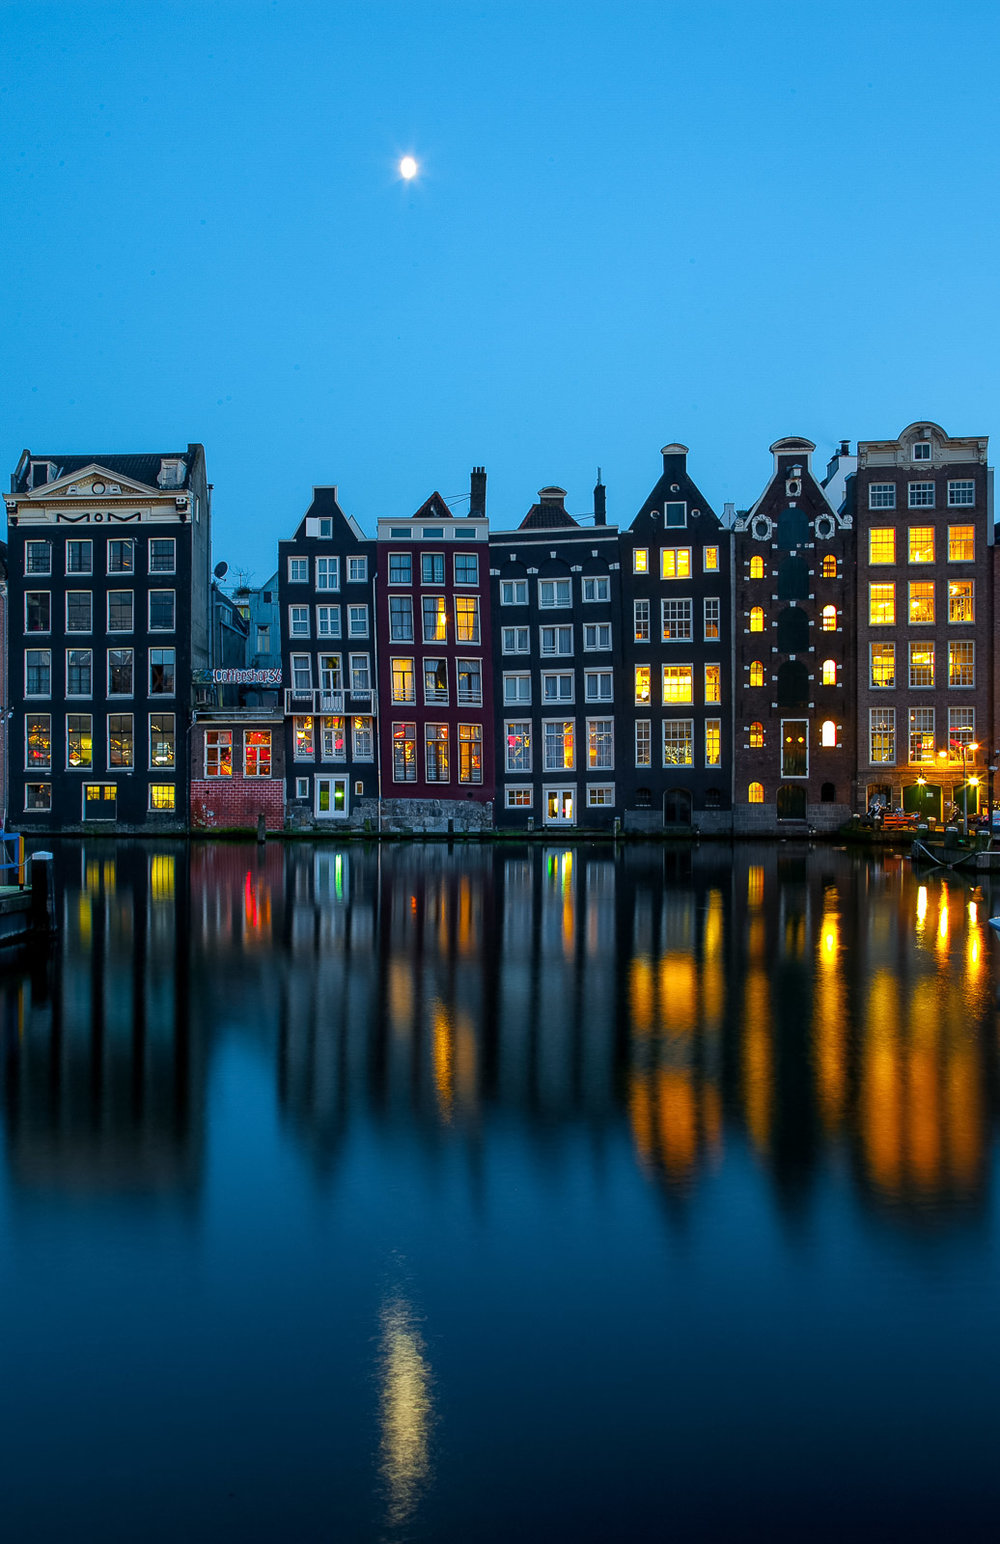 Amsterdam windows reflecting in water. Artem Savateev